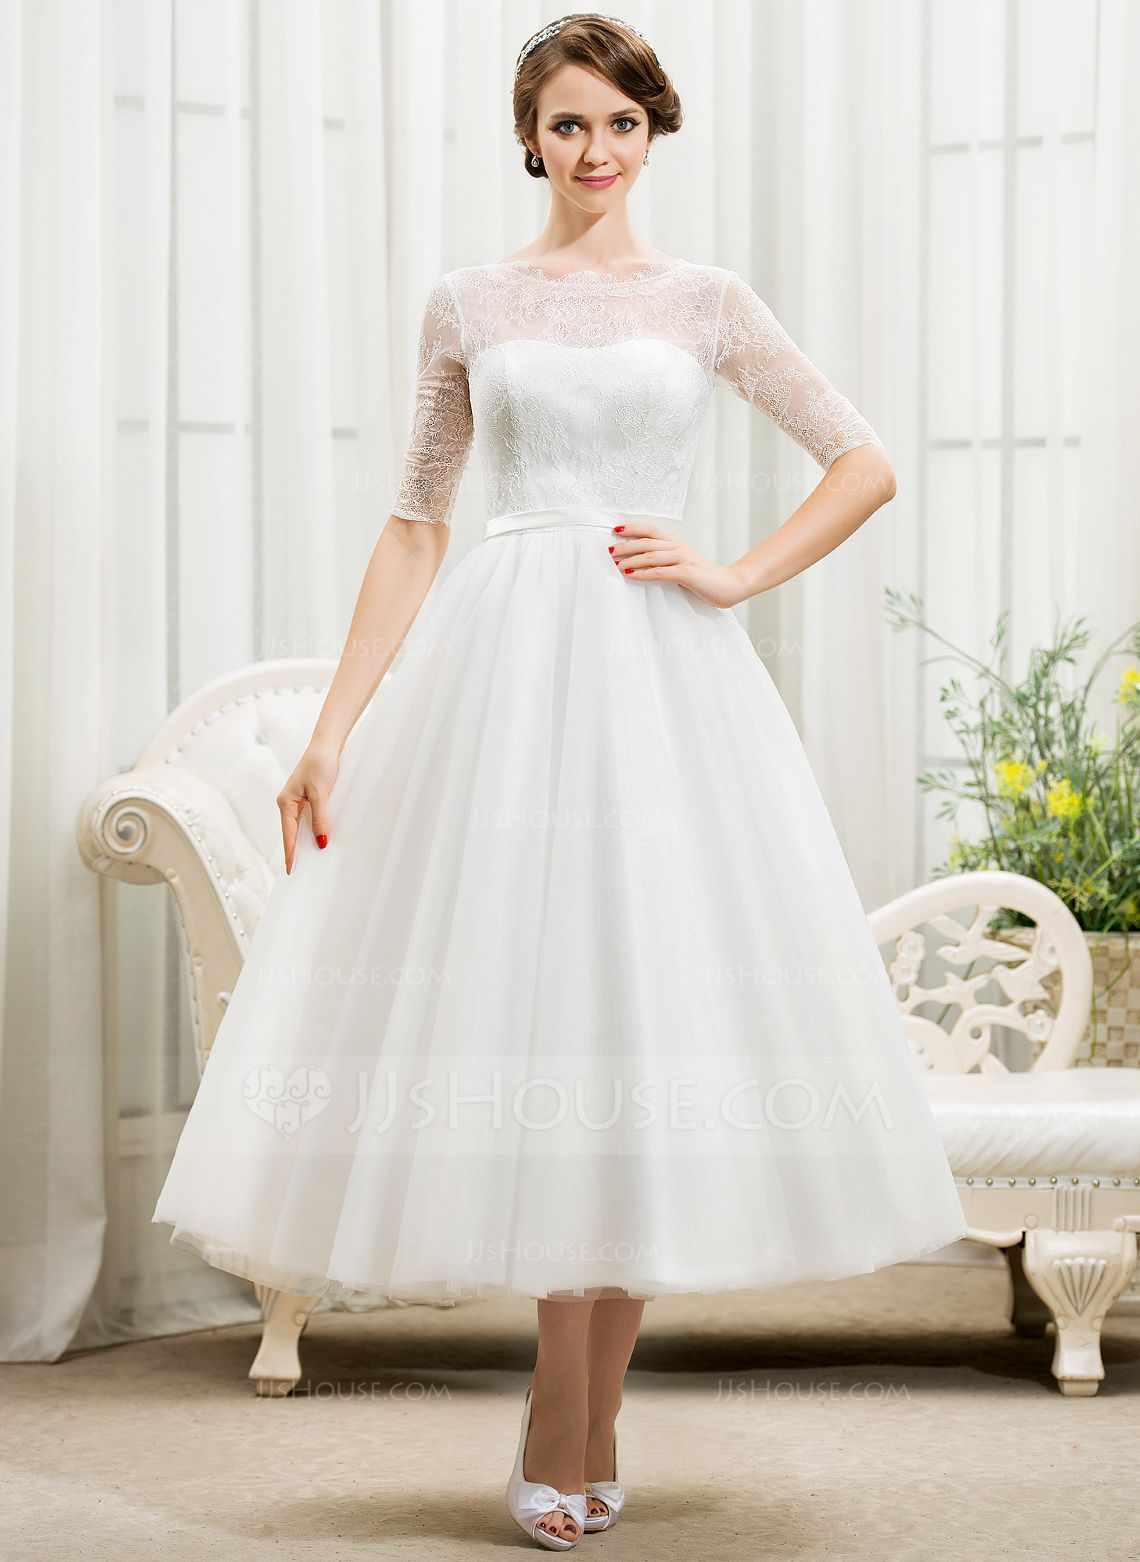 ALine/Princess Scoop Neck TeaLength Tulle Charmeuse Lace